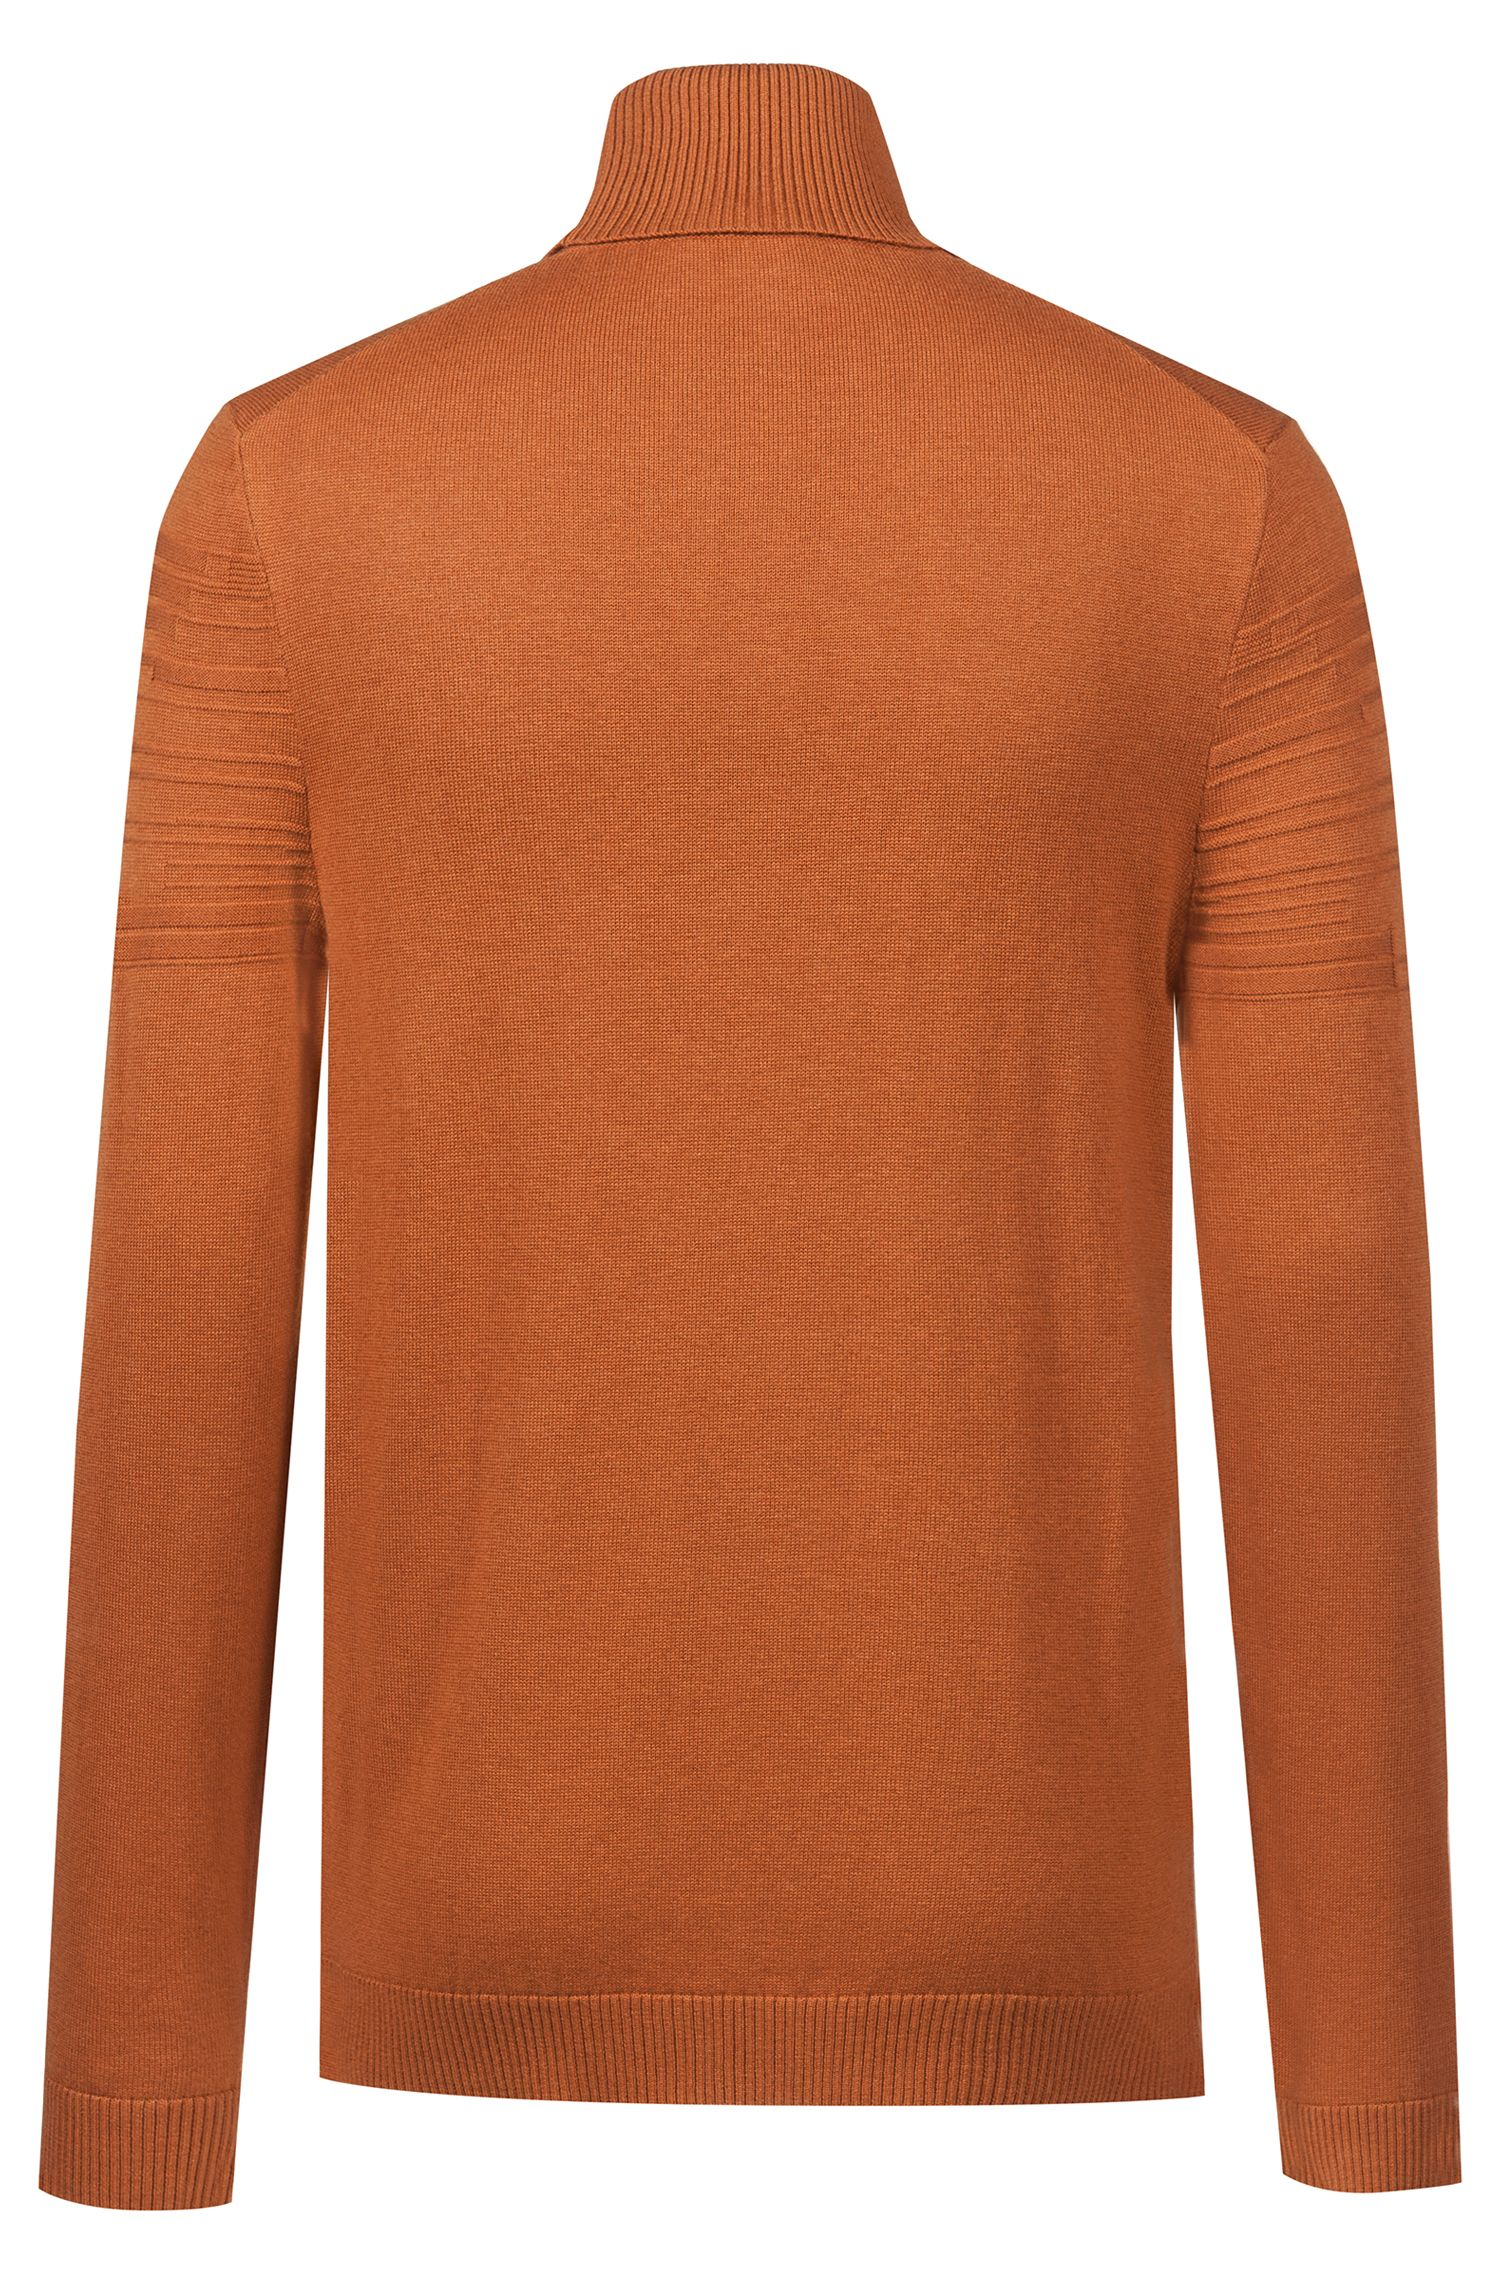 Slim-fit turtleneck sweater in a wool-cotton blend, Brown